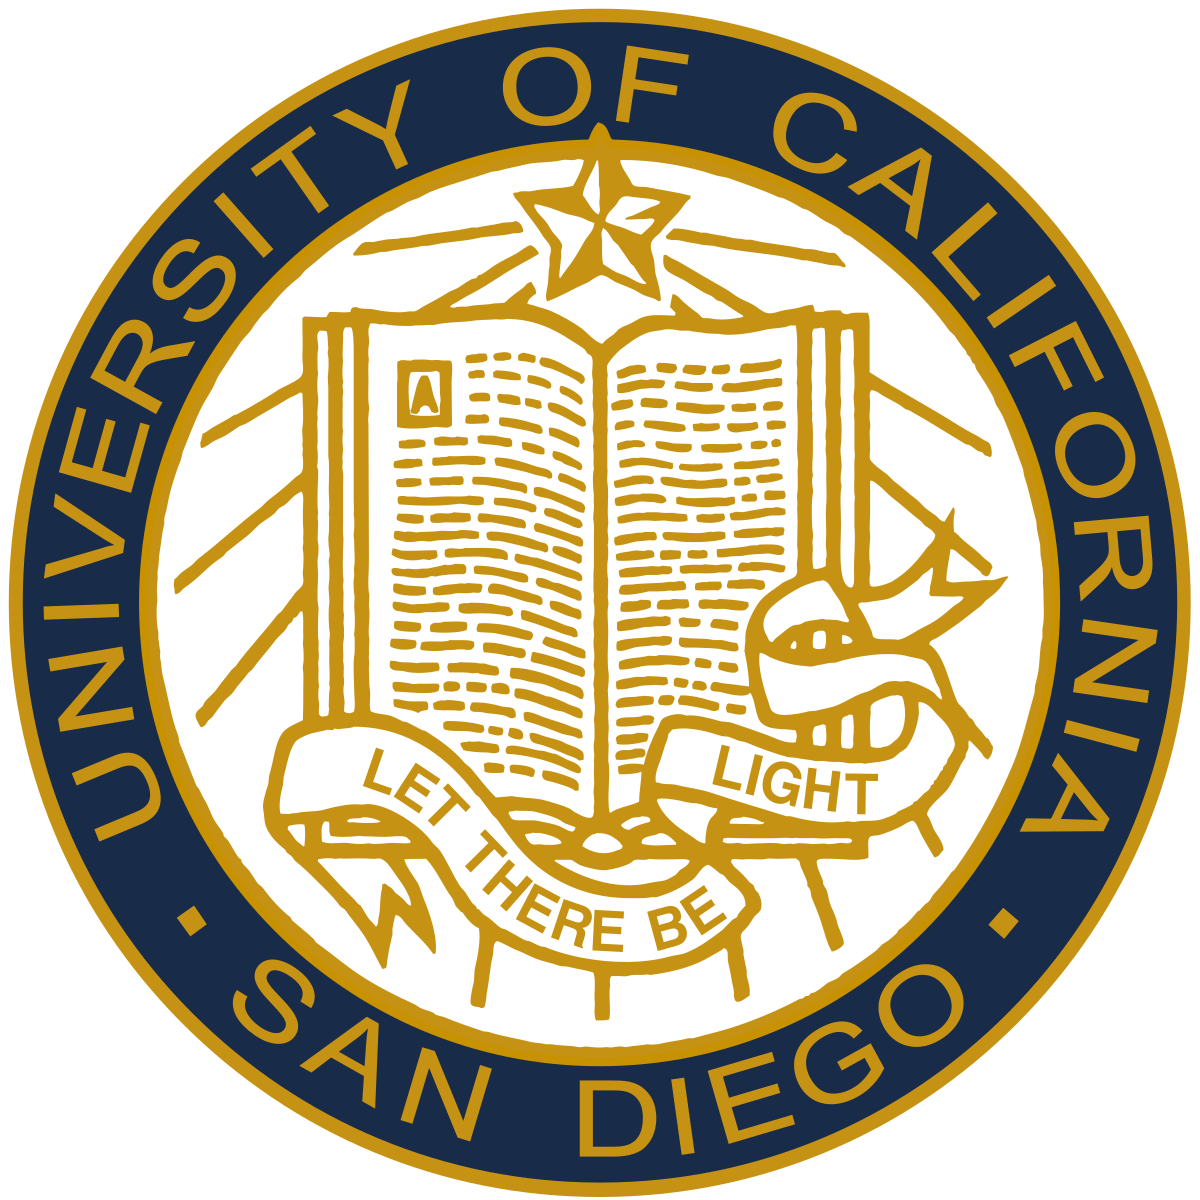 Professional Certificate in Virtual Reality (VR) App Development by University of California, San Diego [Online, 5 Months]: Register Now